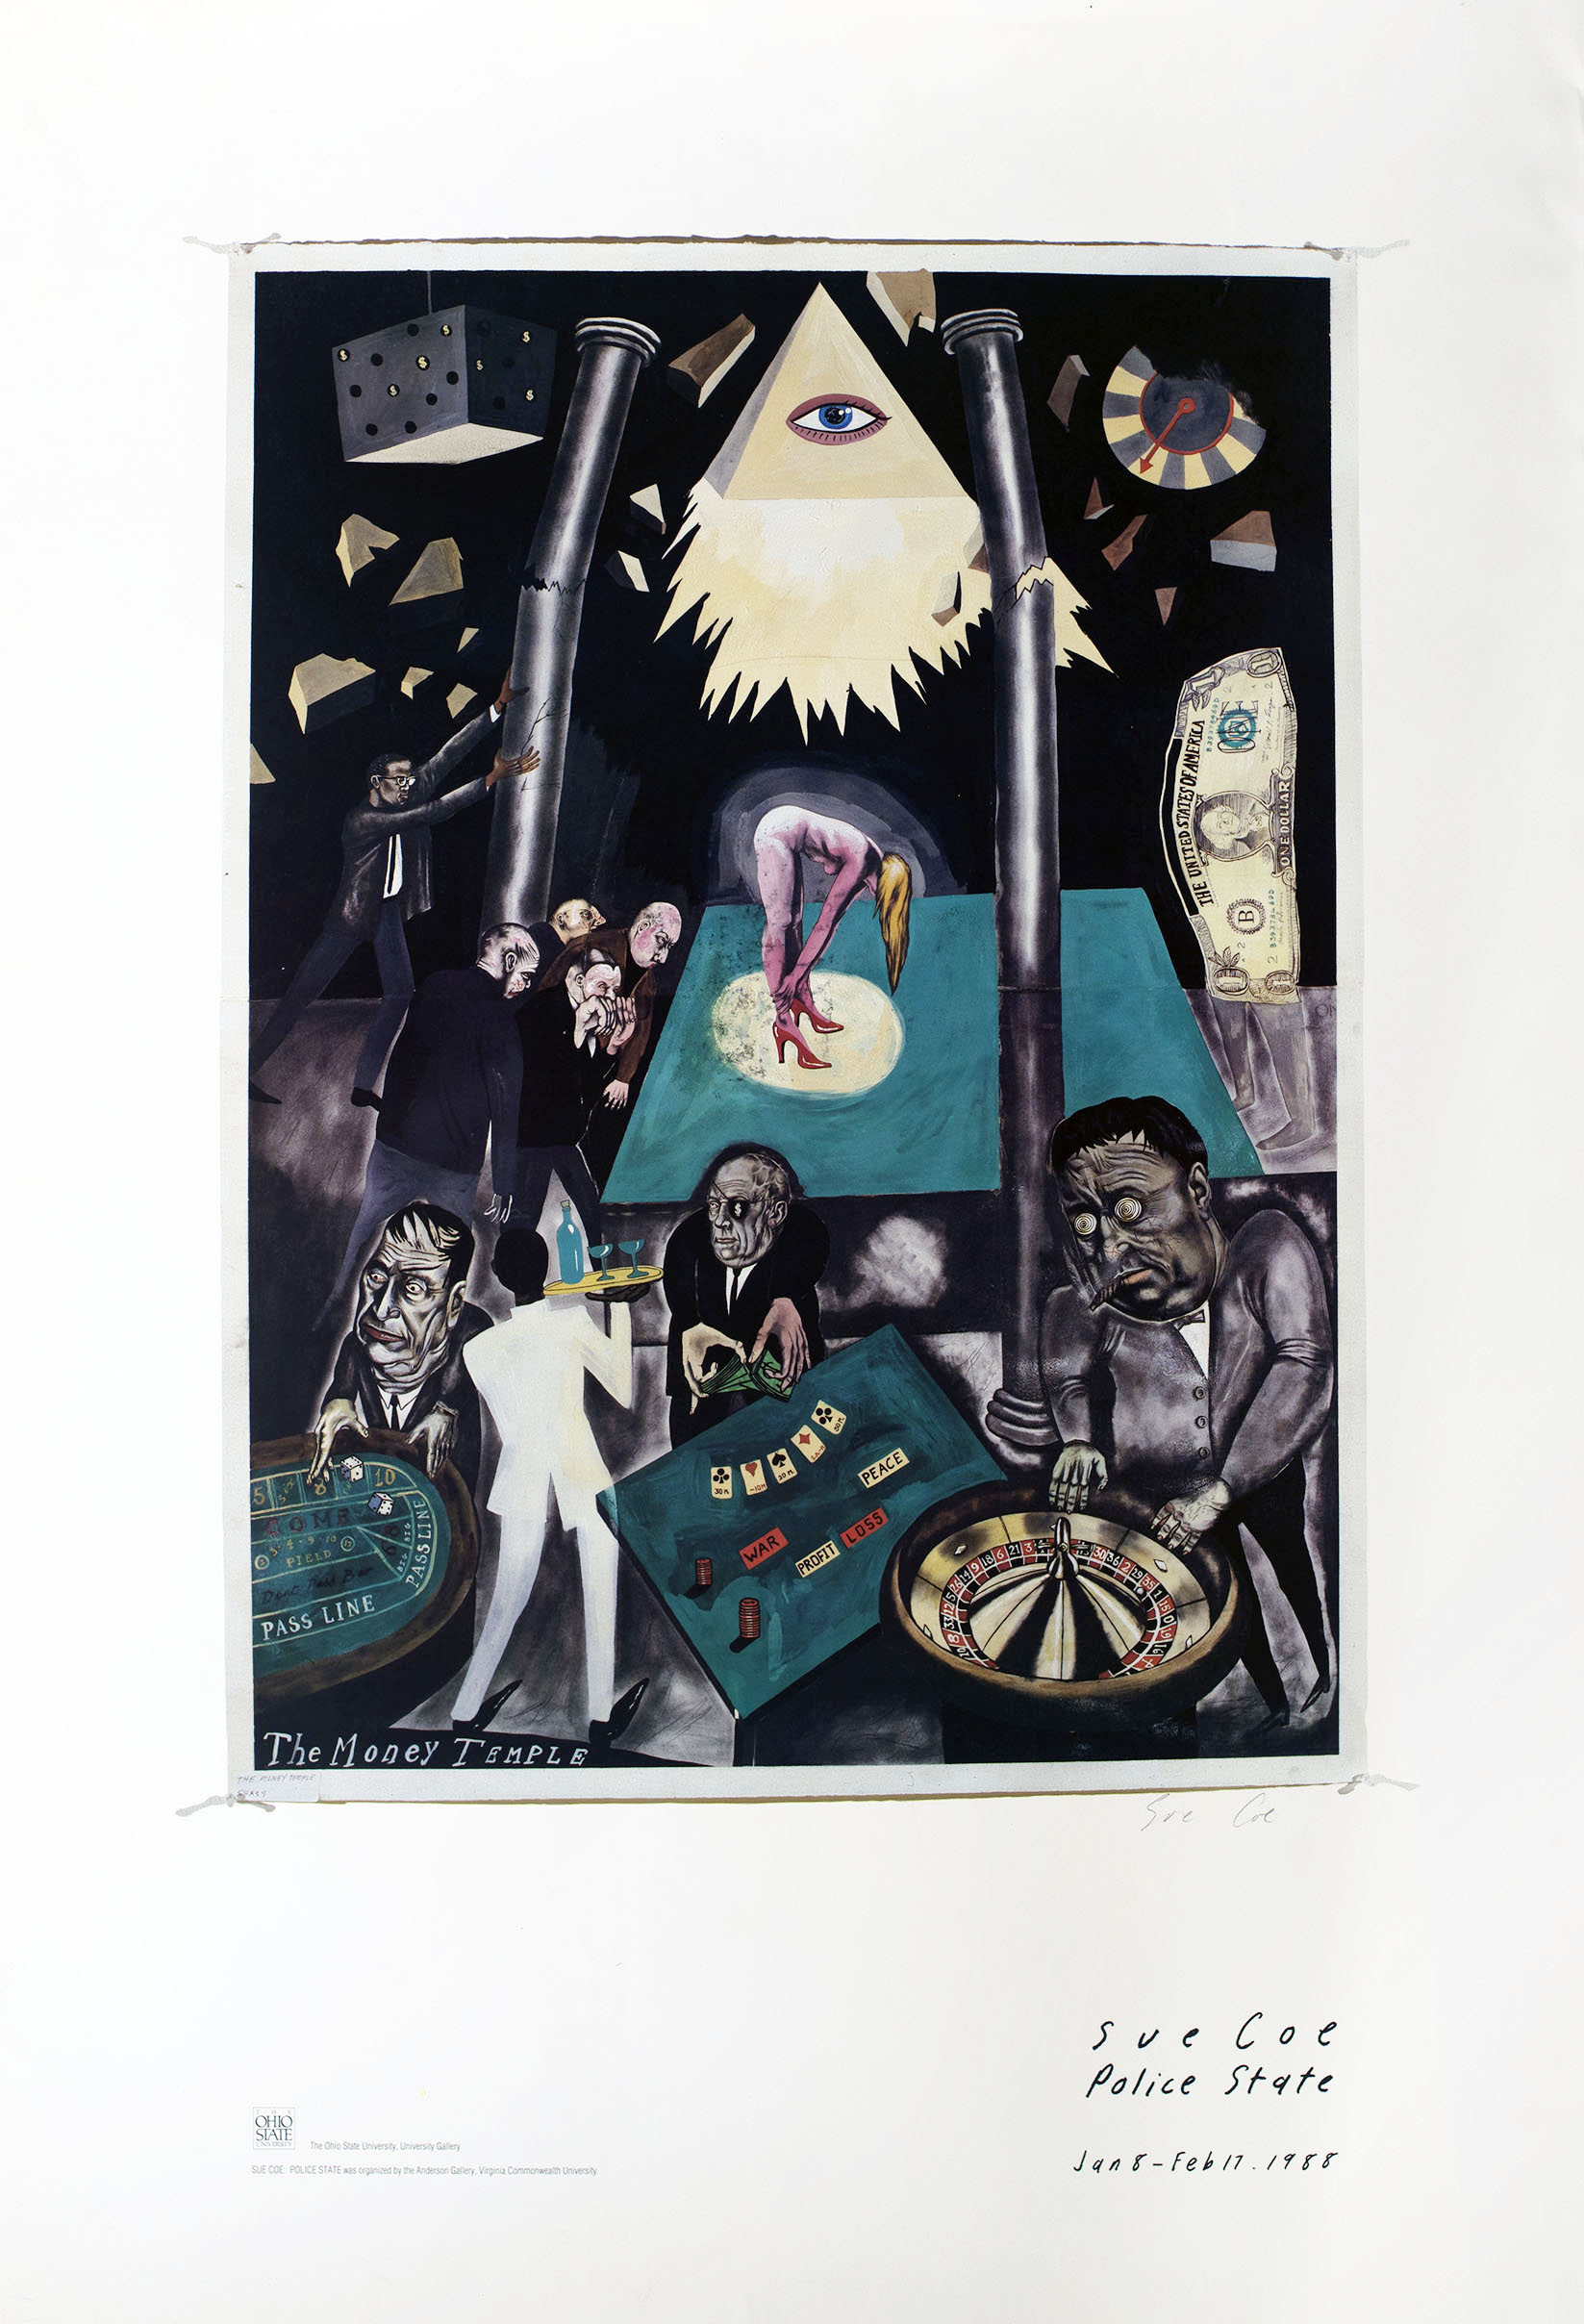 Exhibition poster showing a surreal illustration of the interior of a strip club, where a woman on a stage in red heels is lit from above by the triangular Eye of Providence. Men gamble in the foreground. The figure of Malcolm X stands in the background pushing over a column.